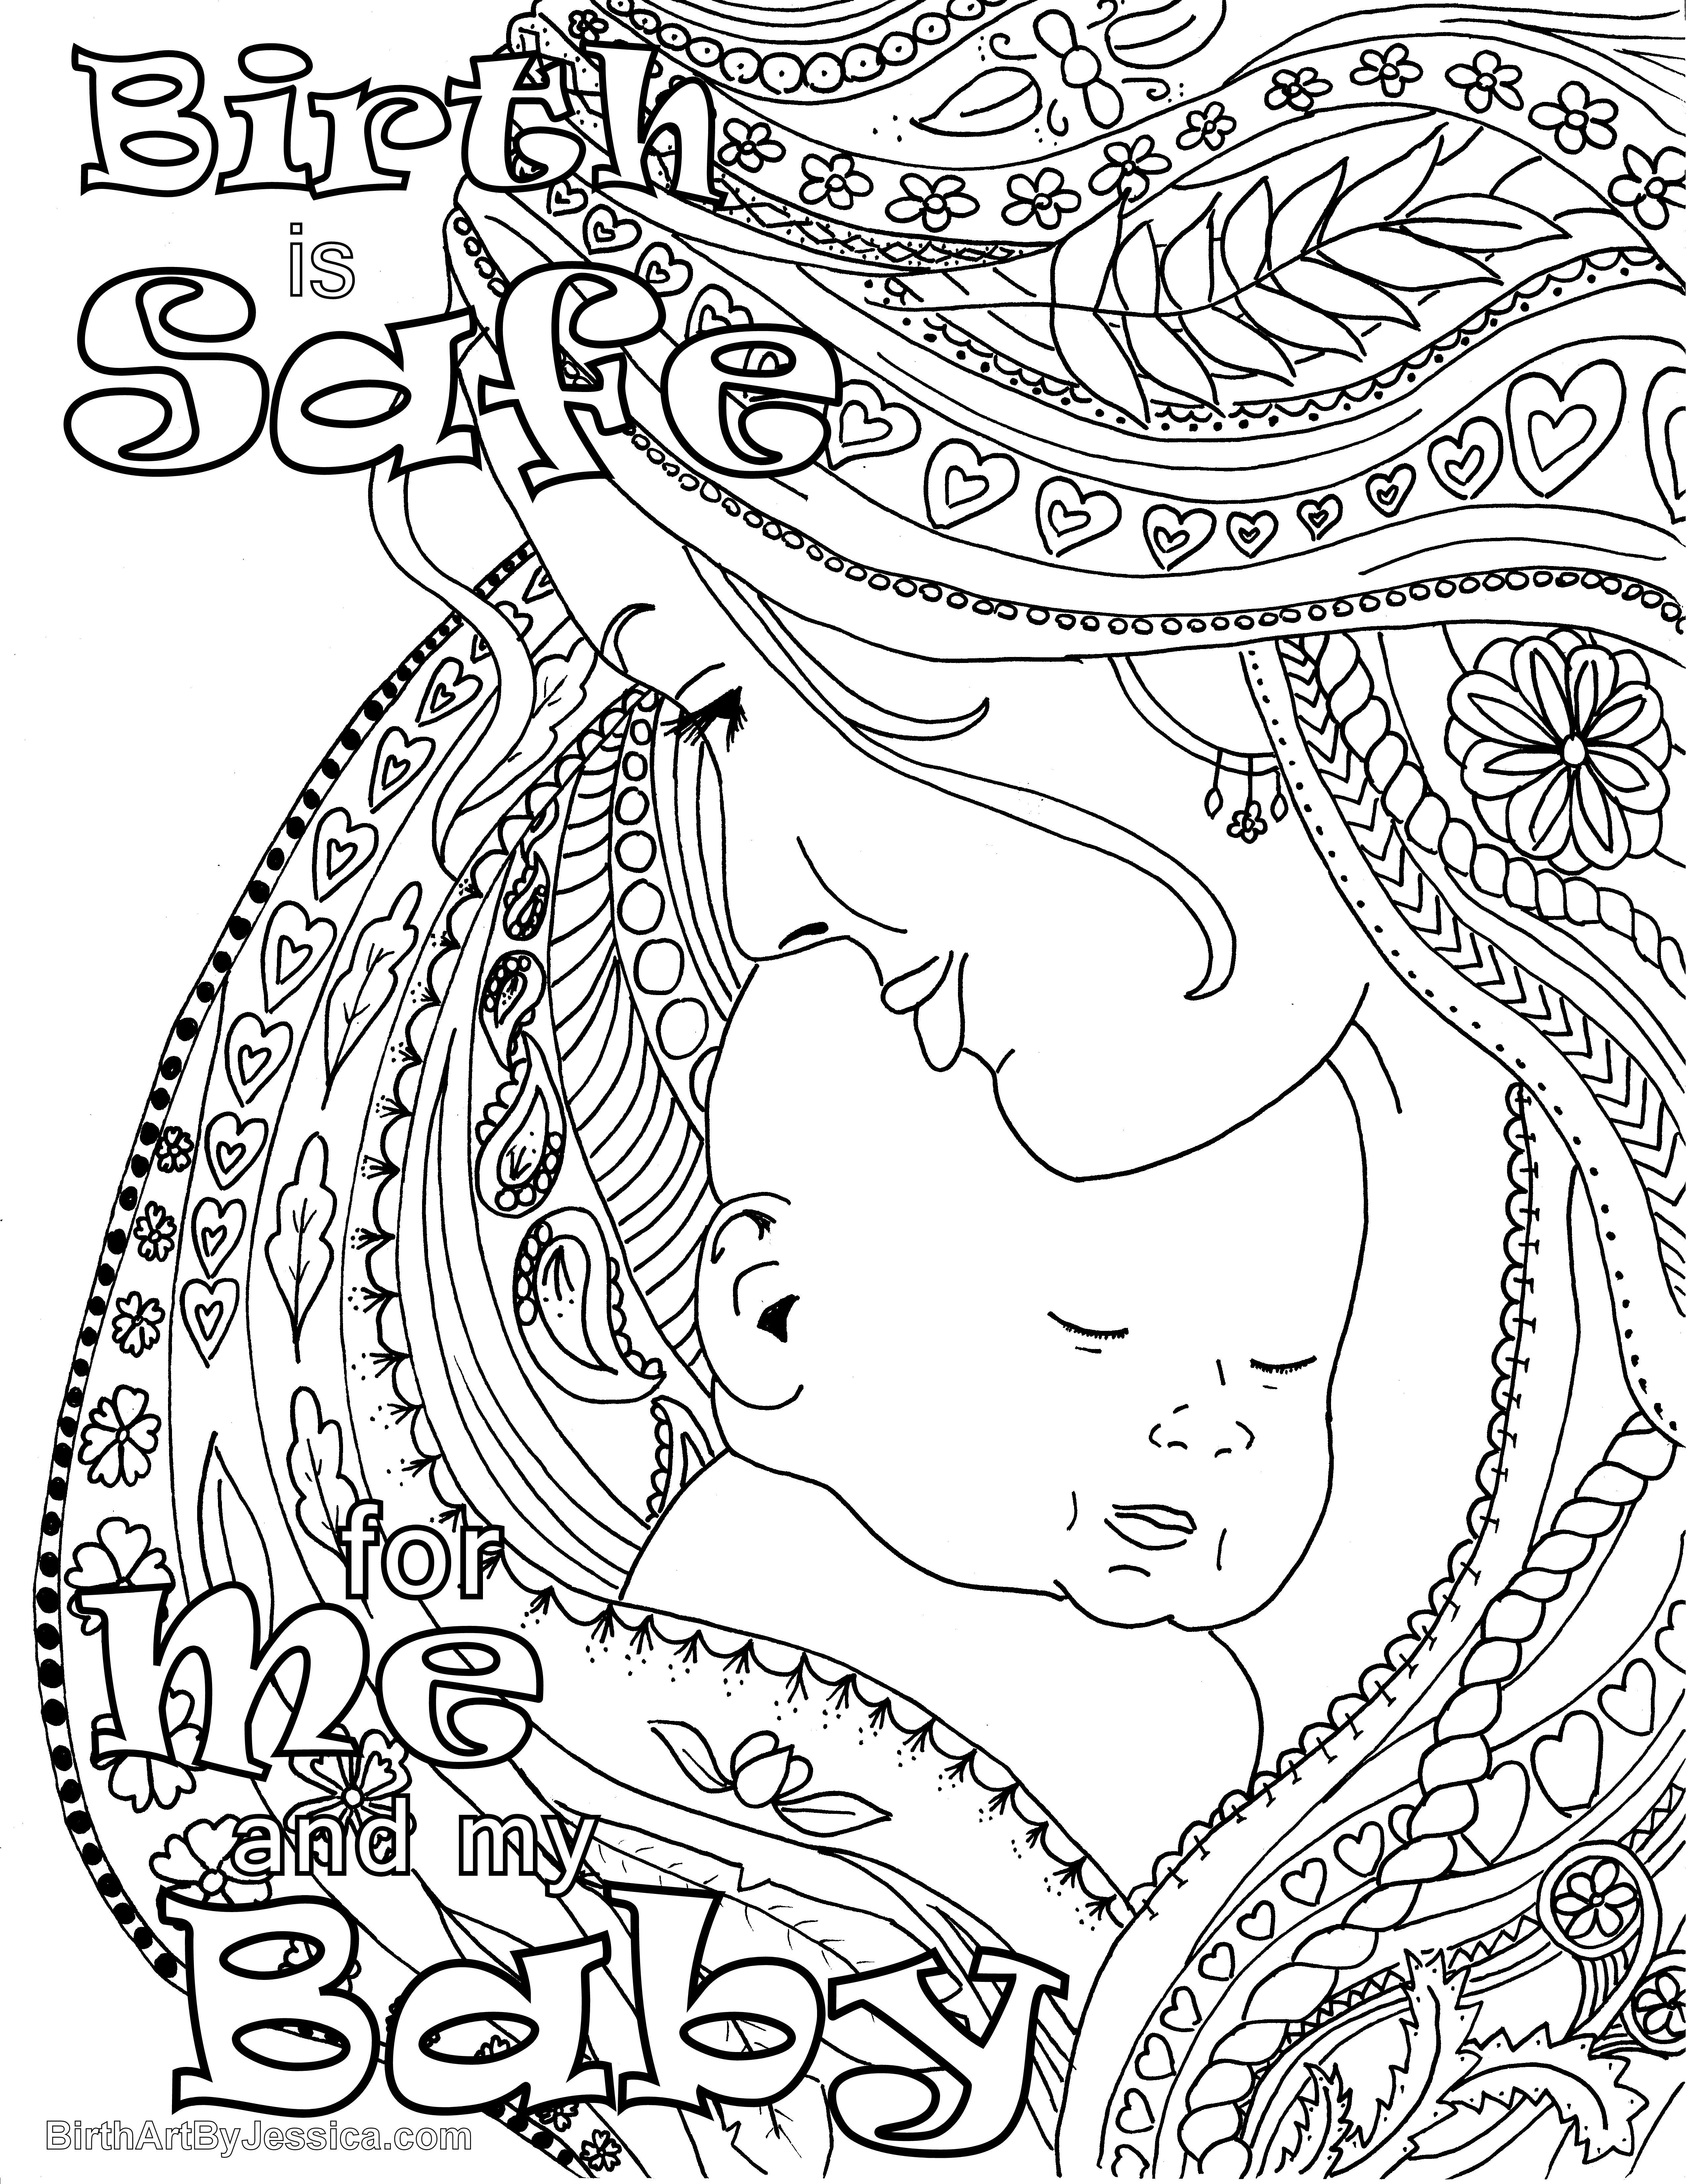 Birth Affirmation Coloring Page Free Printable Birth Is Safe For Me And My Baby